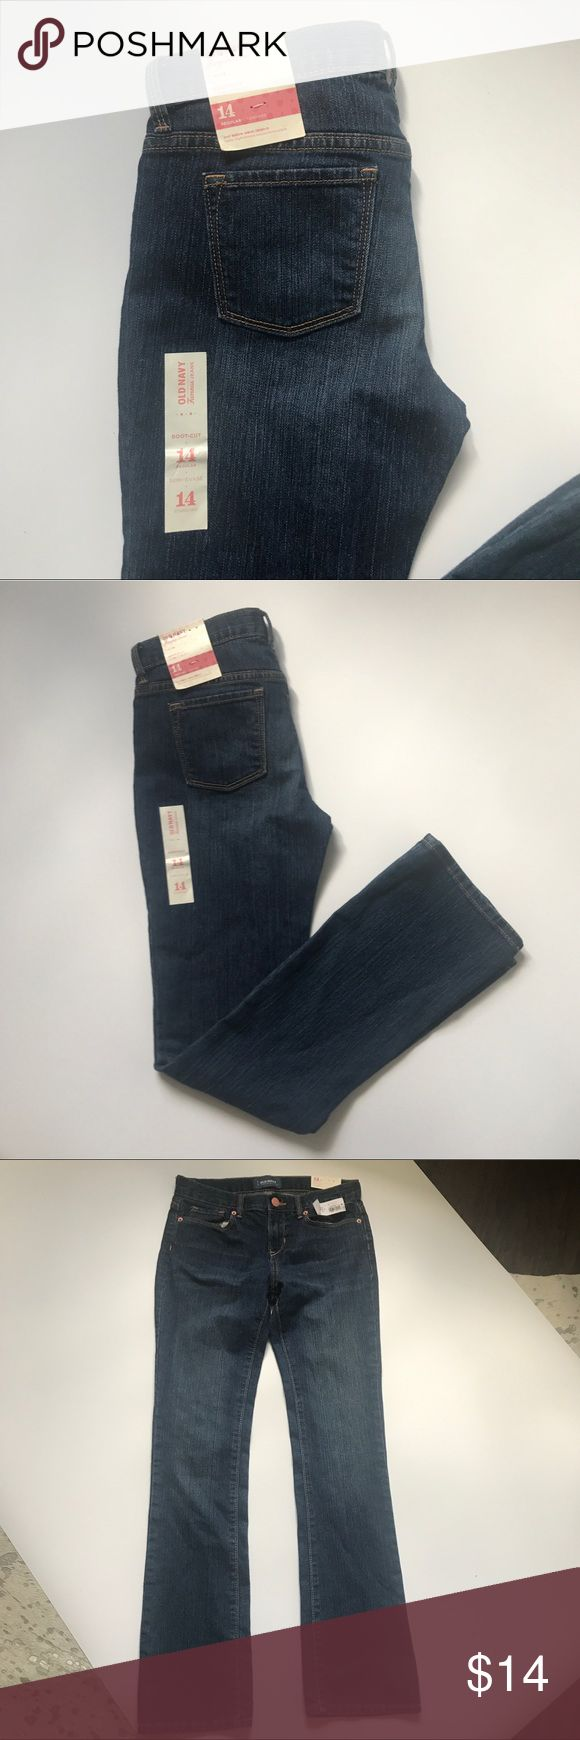 New with tags girls old navy boot cut jeans New with tags girls old navy boot cut jeans. Size 14 regular Old Navy Bottoms Jeans